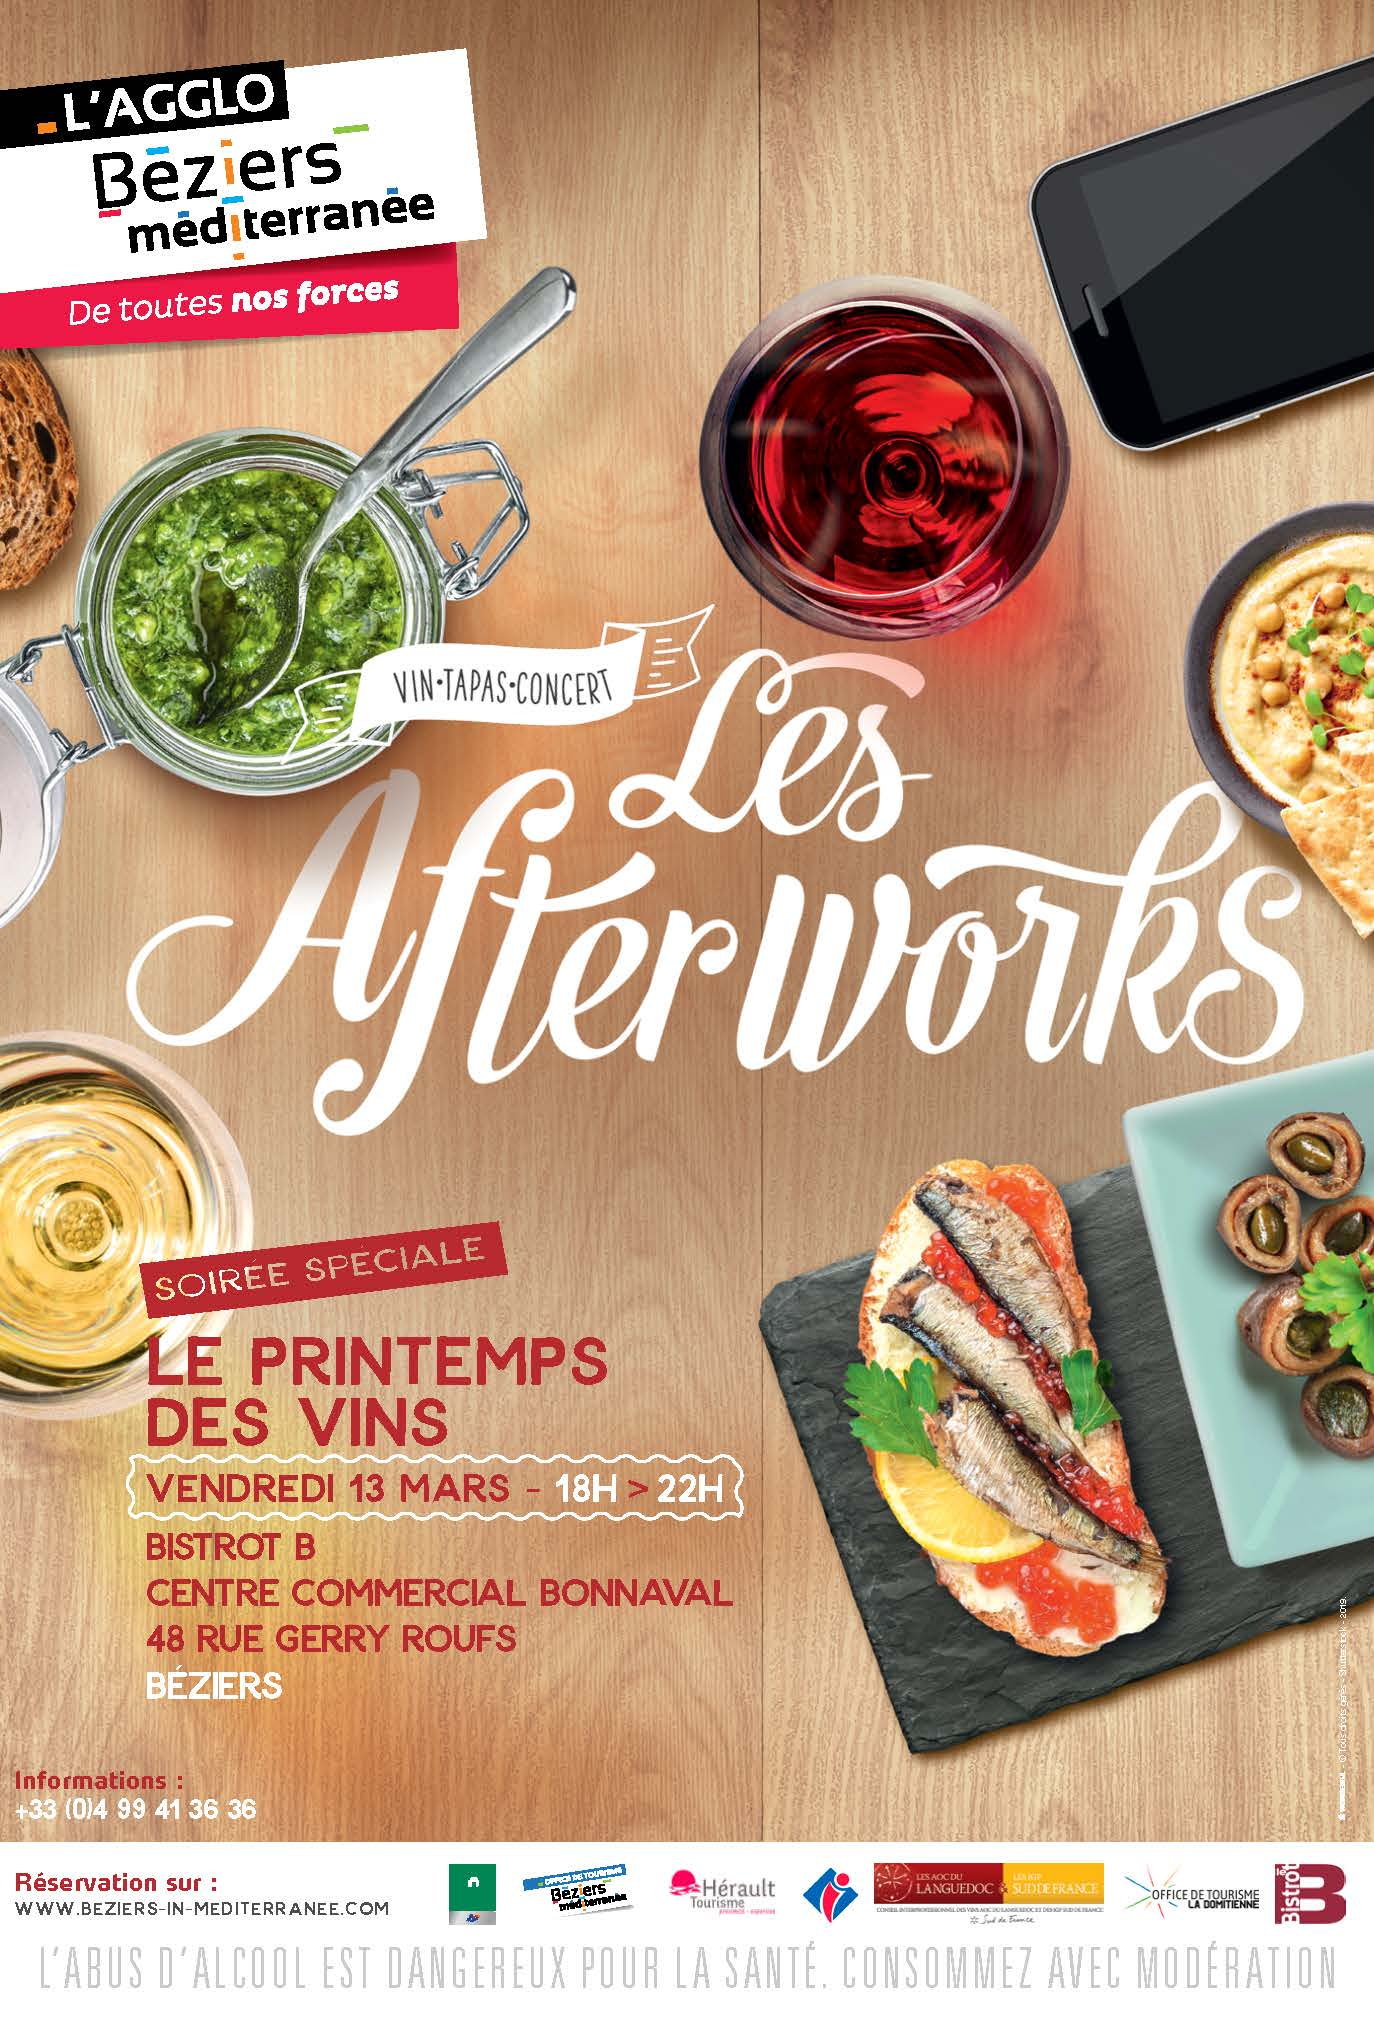 afterwork agglo beziers